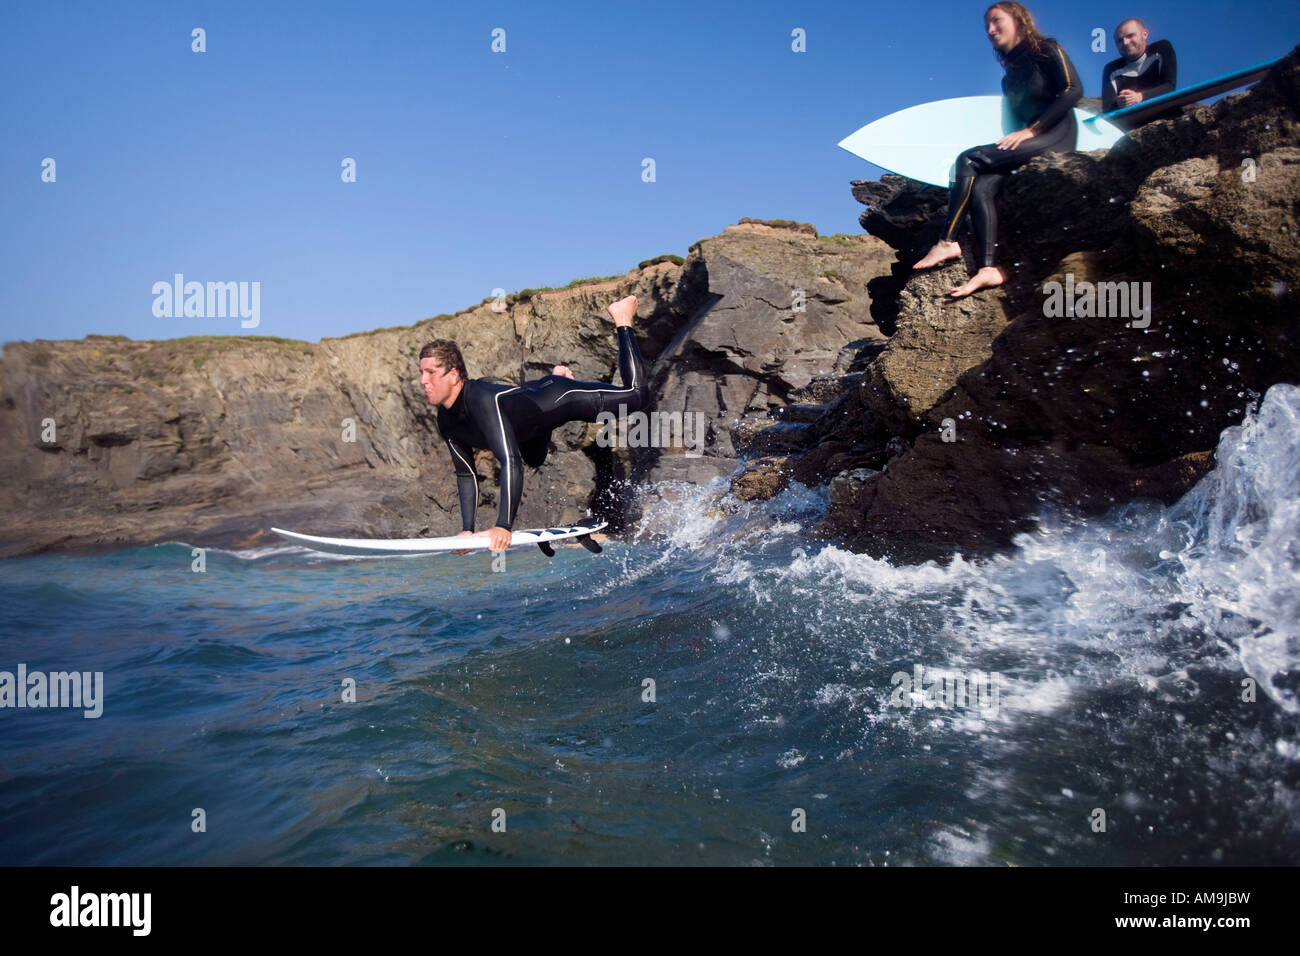 Man jumping into water on surfboard with two people sitting on large rocks smiling. - Stock Image